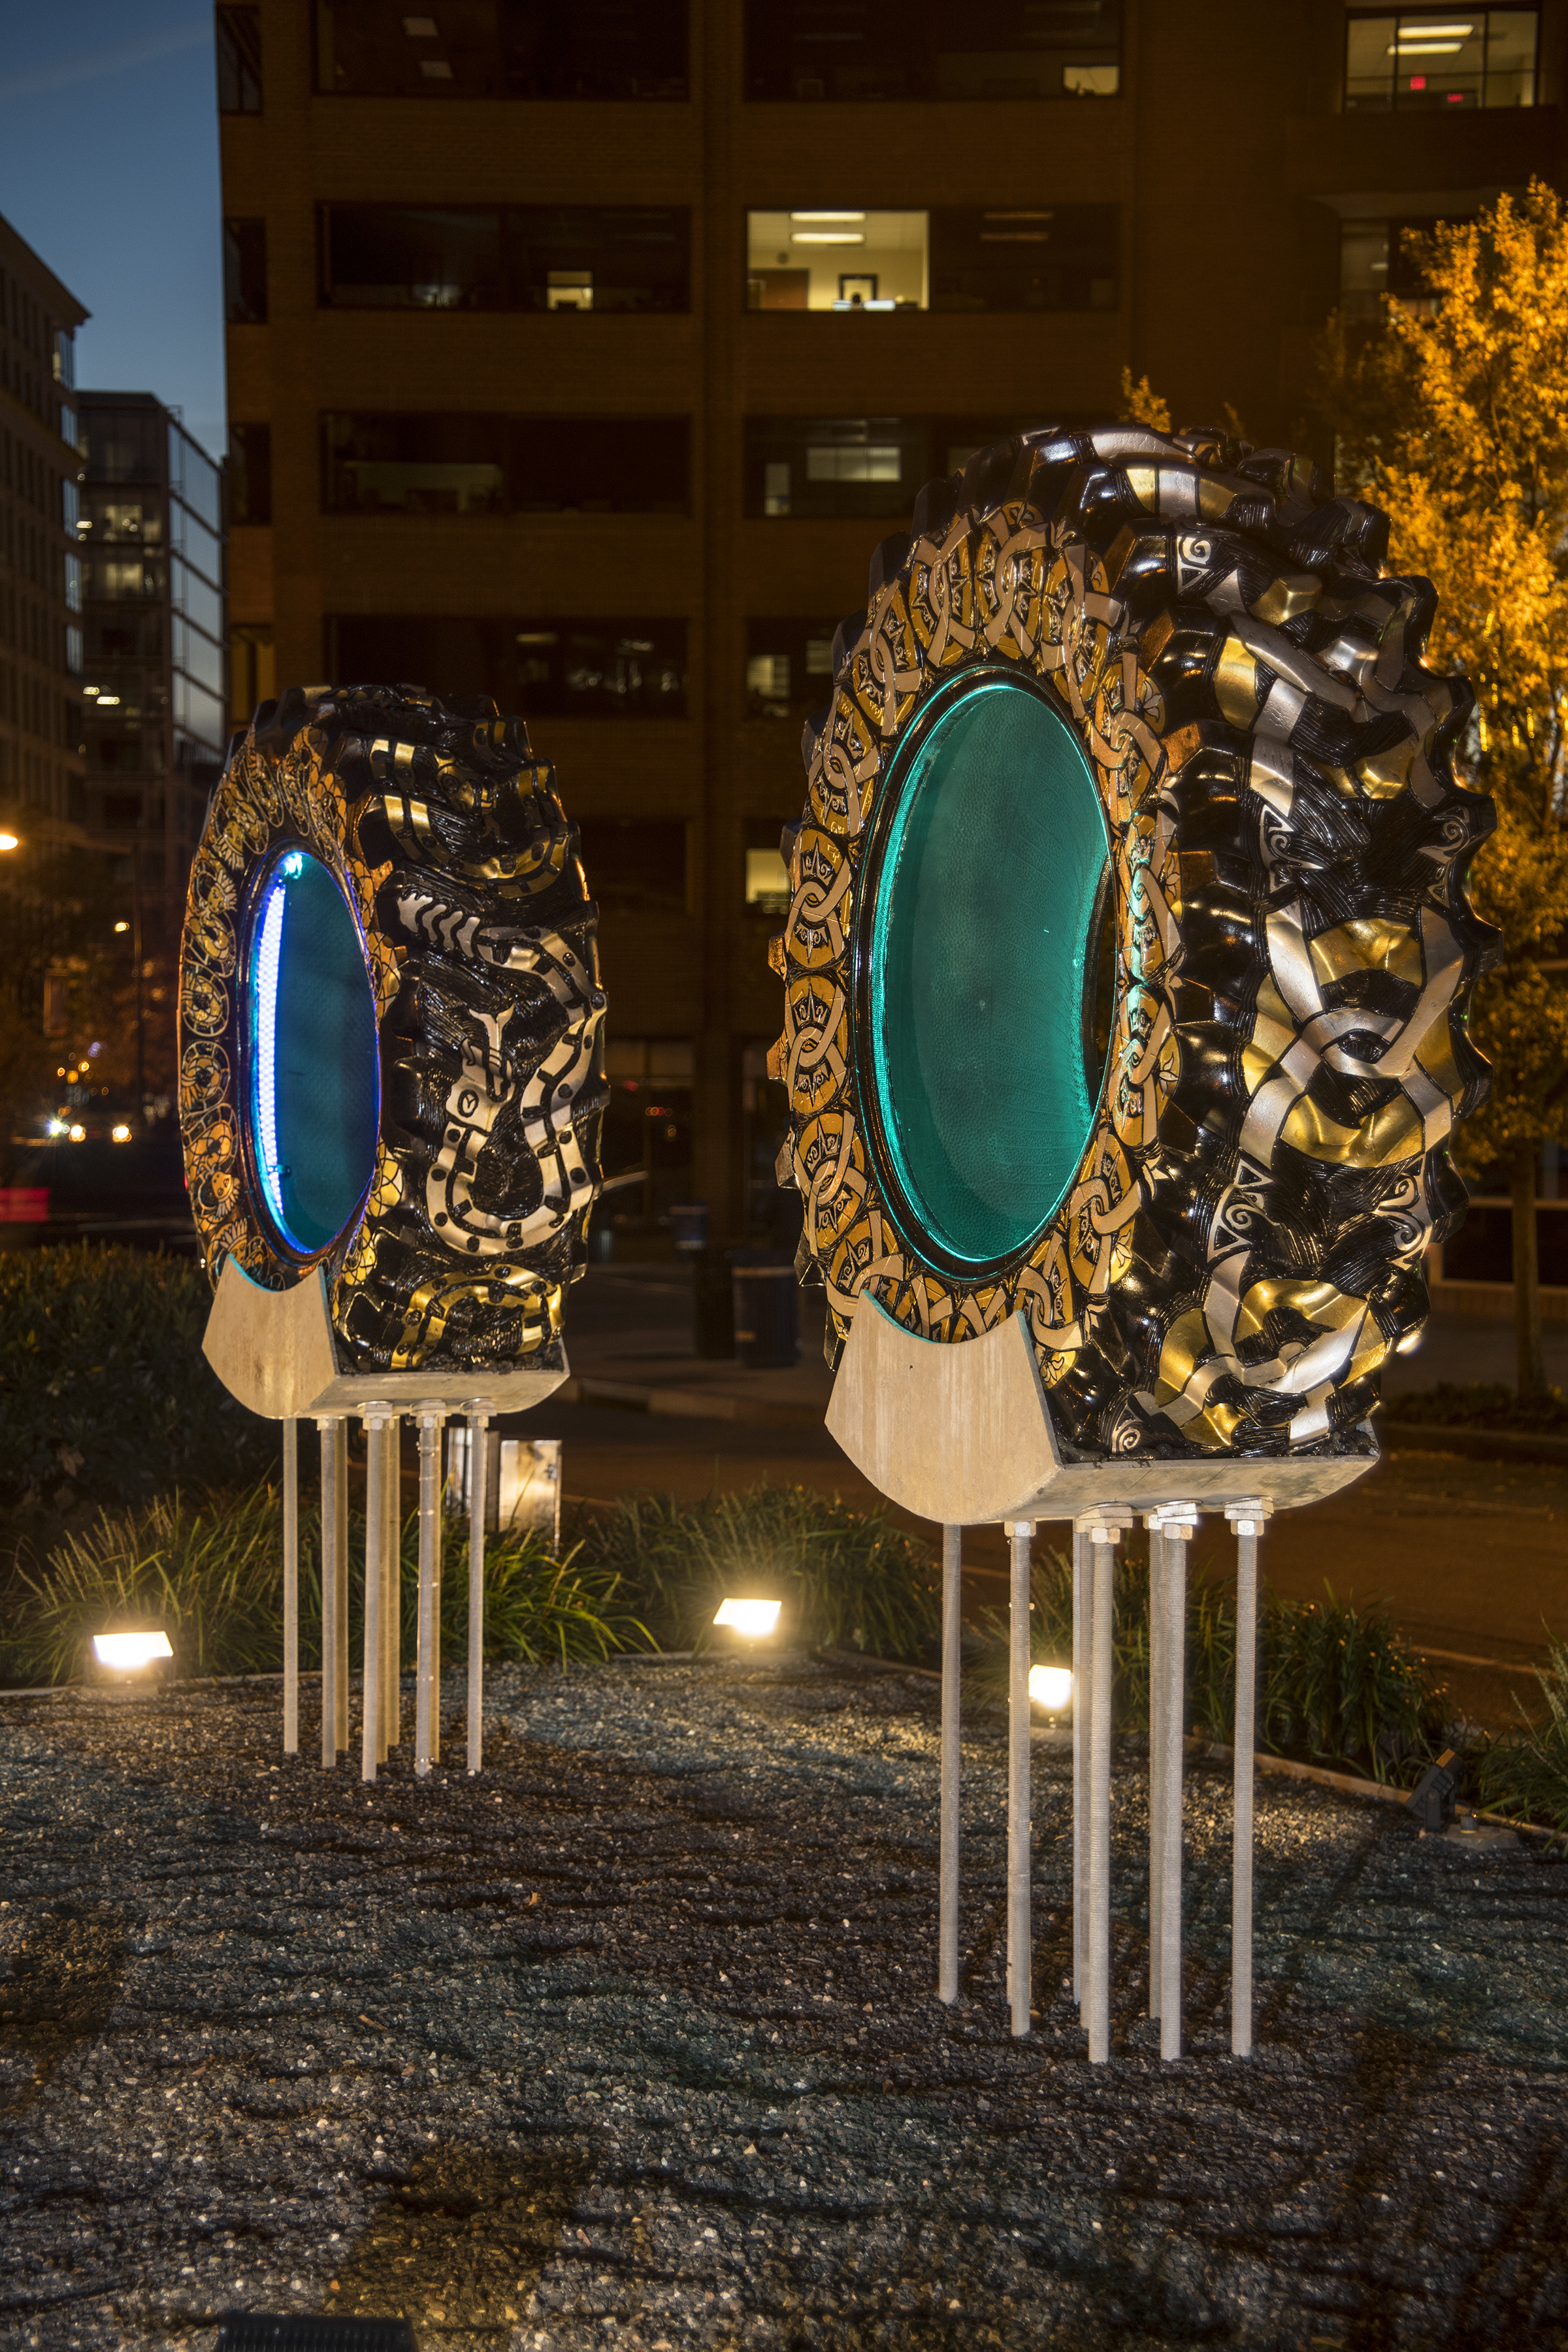 Two large tractor tires are displayed on silver legged pedestals in a center road median of a city street. Each tires is engraved with different designs: one with a snake and the other with a chain pattern. Both are designs are painted silver and gold. Blue lights placed in the interior circle of the tires light the structures up.